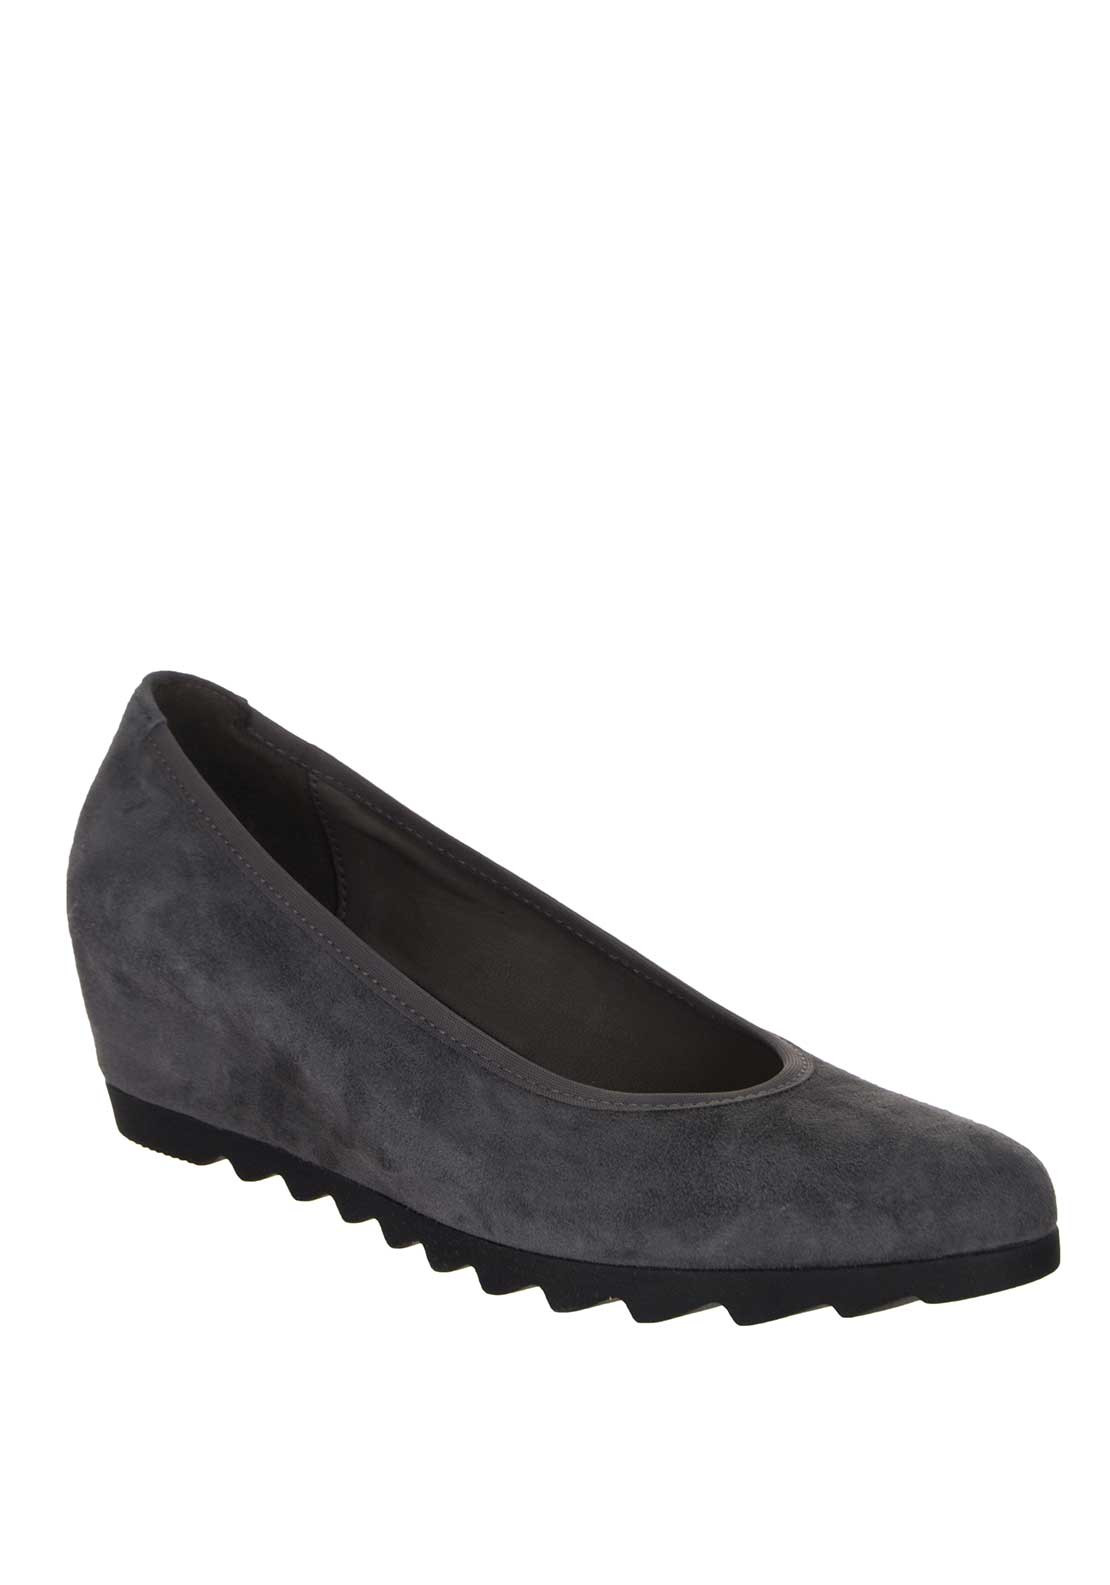 Gabor Request Womens Wedge Court Shoes, Dark Grey Suede